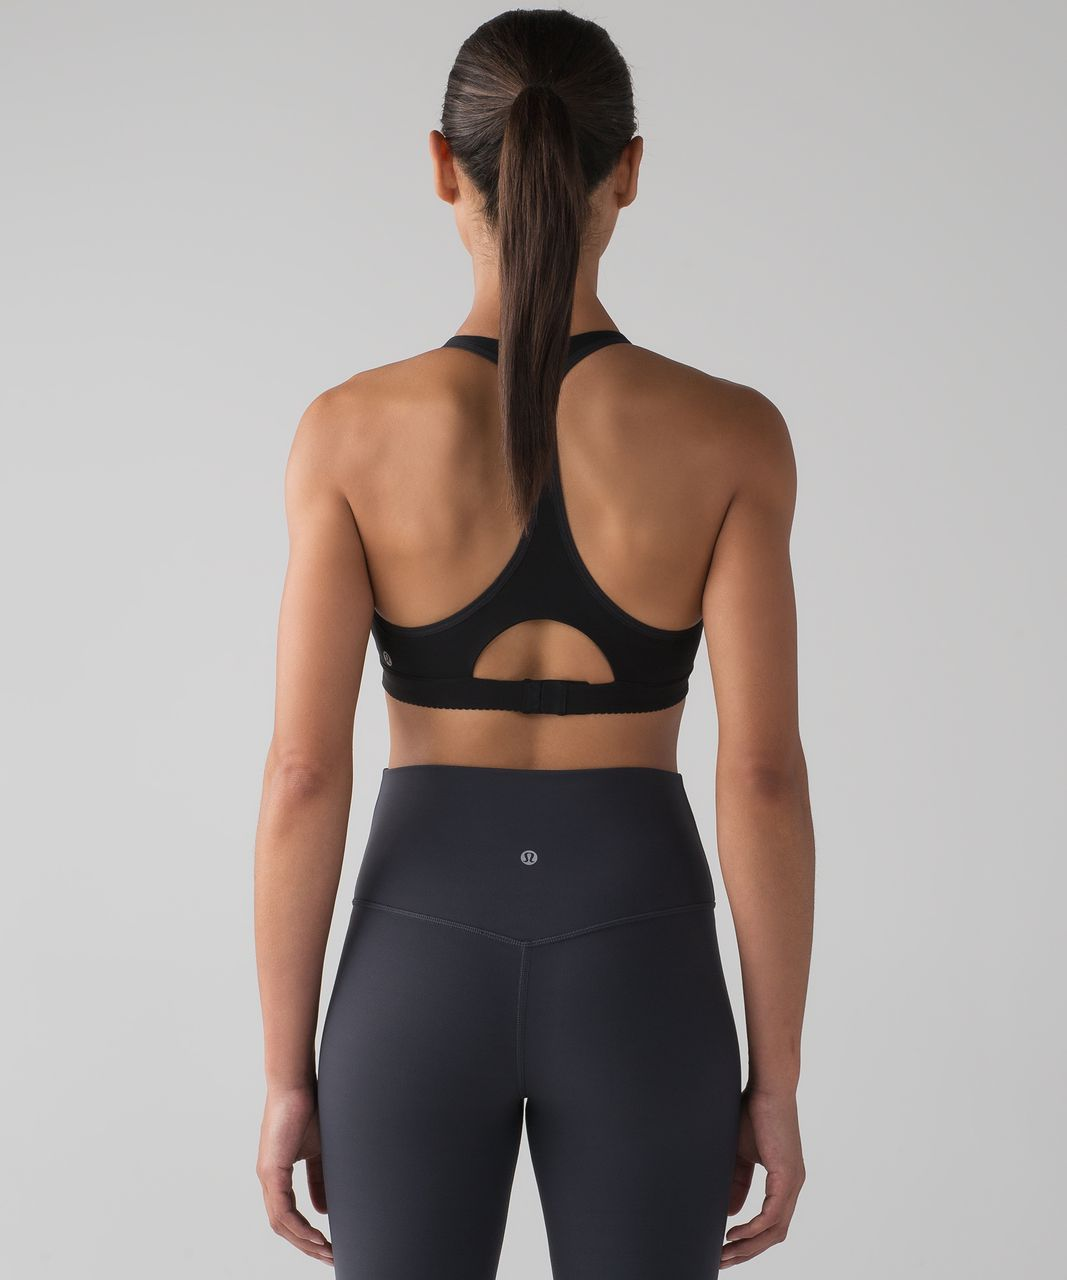 5320c35bc29 Lululemon All Day Breeze Bra - Black - lulu fanatics